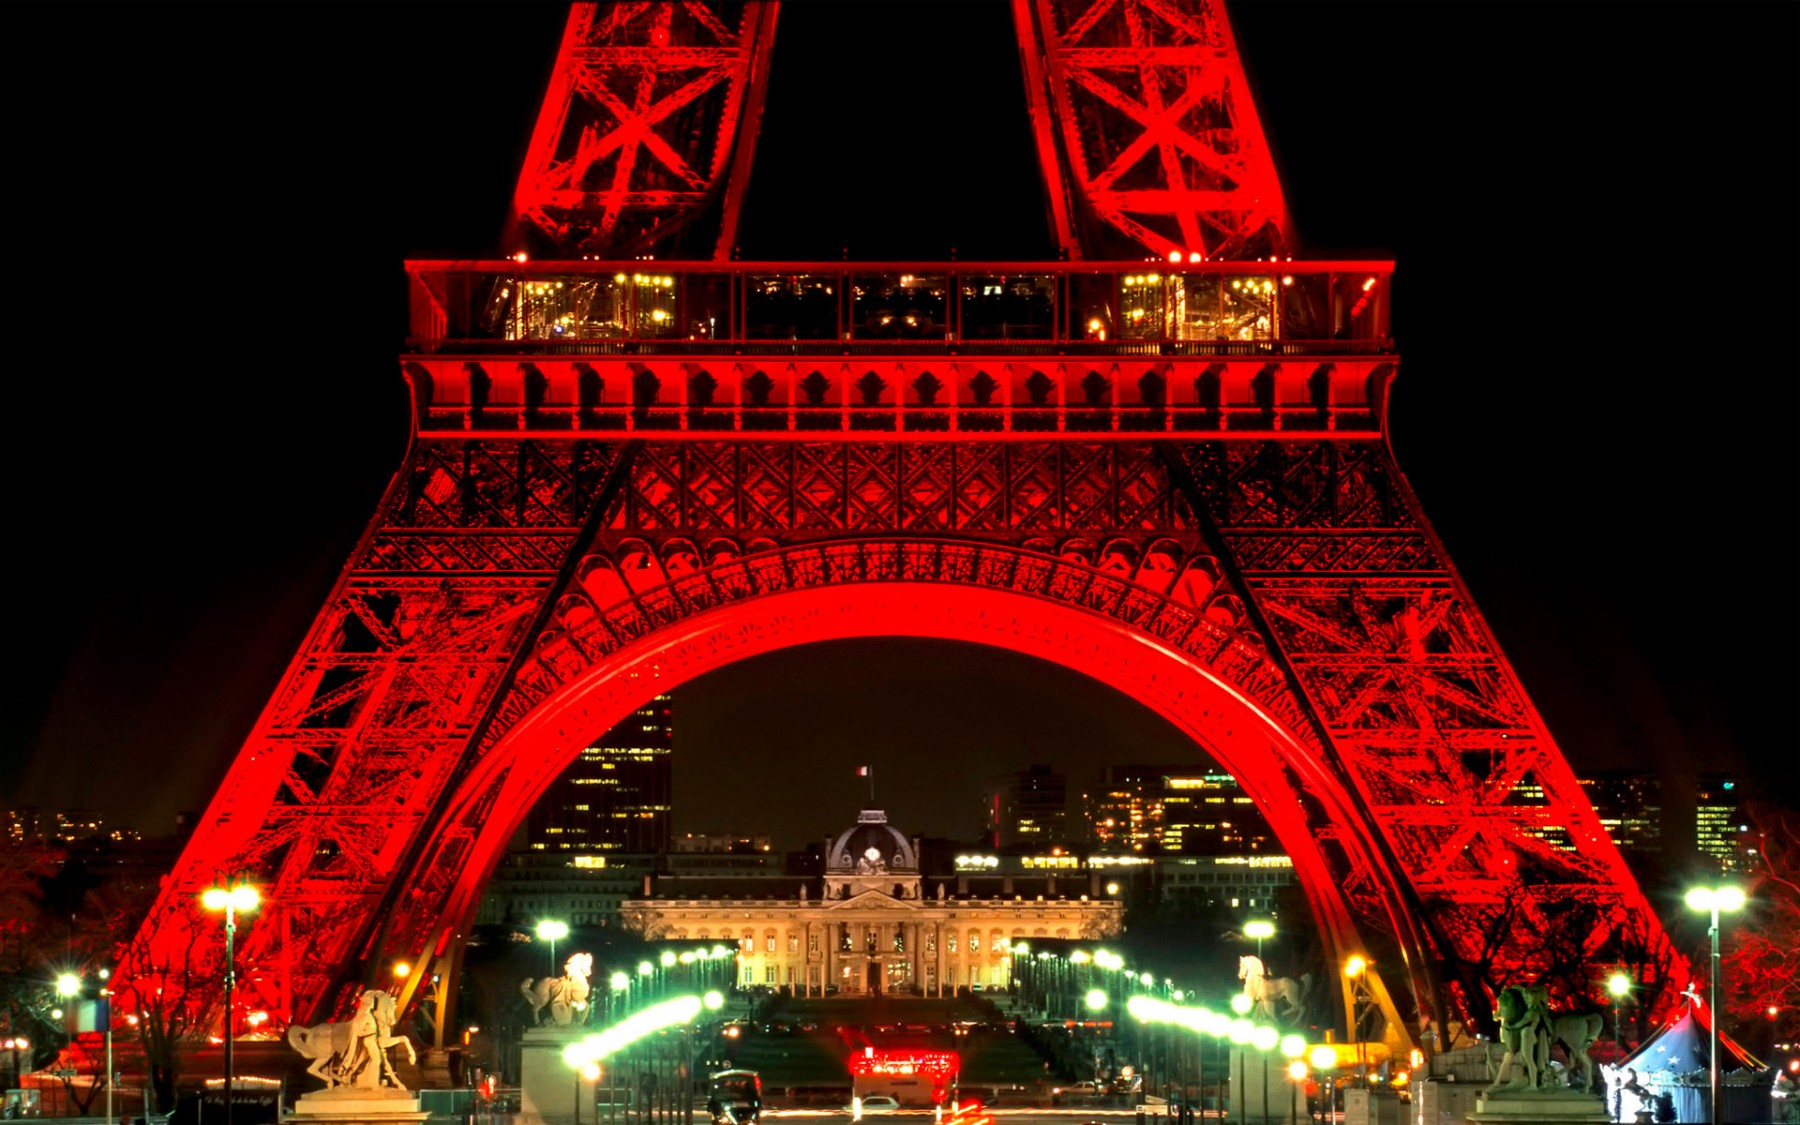 4225621-eiffel-tower-at-night[1]